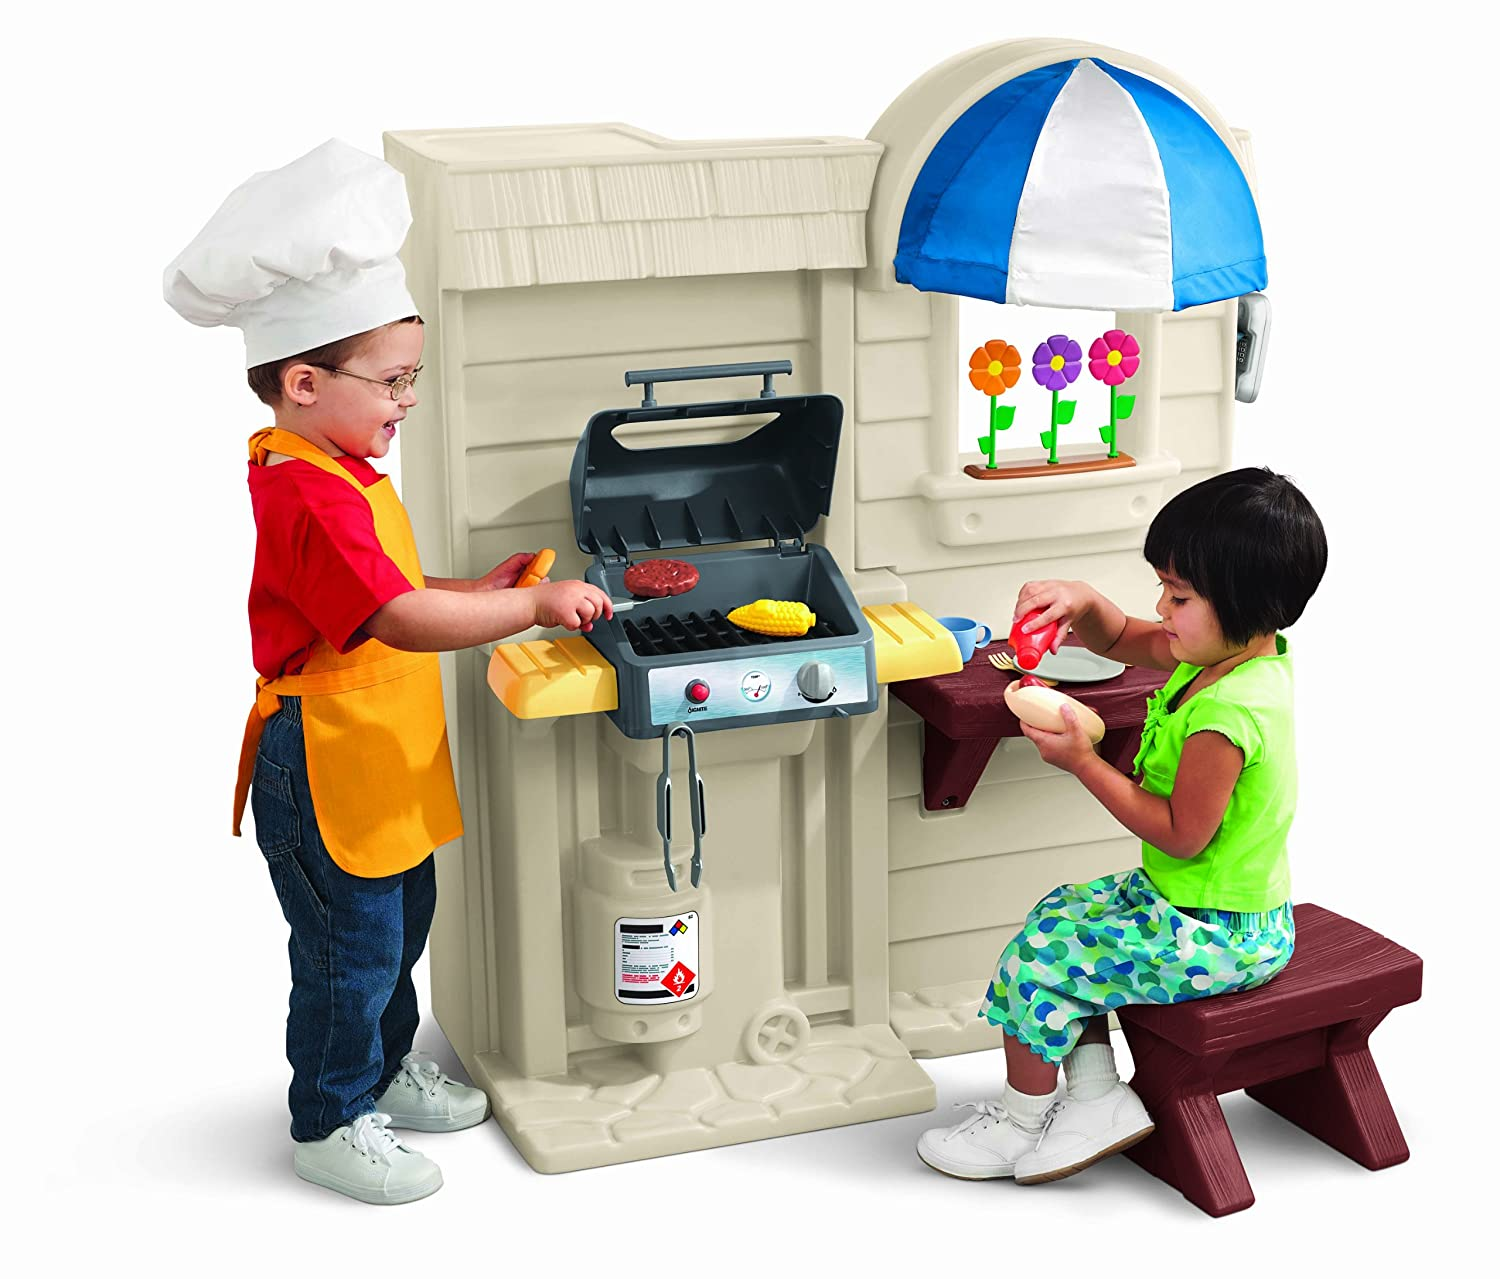 Amazon.com: Little Tikes Inside/Outside Cook N Grill Kitchen: Toys ...